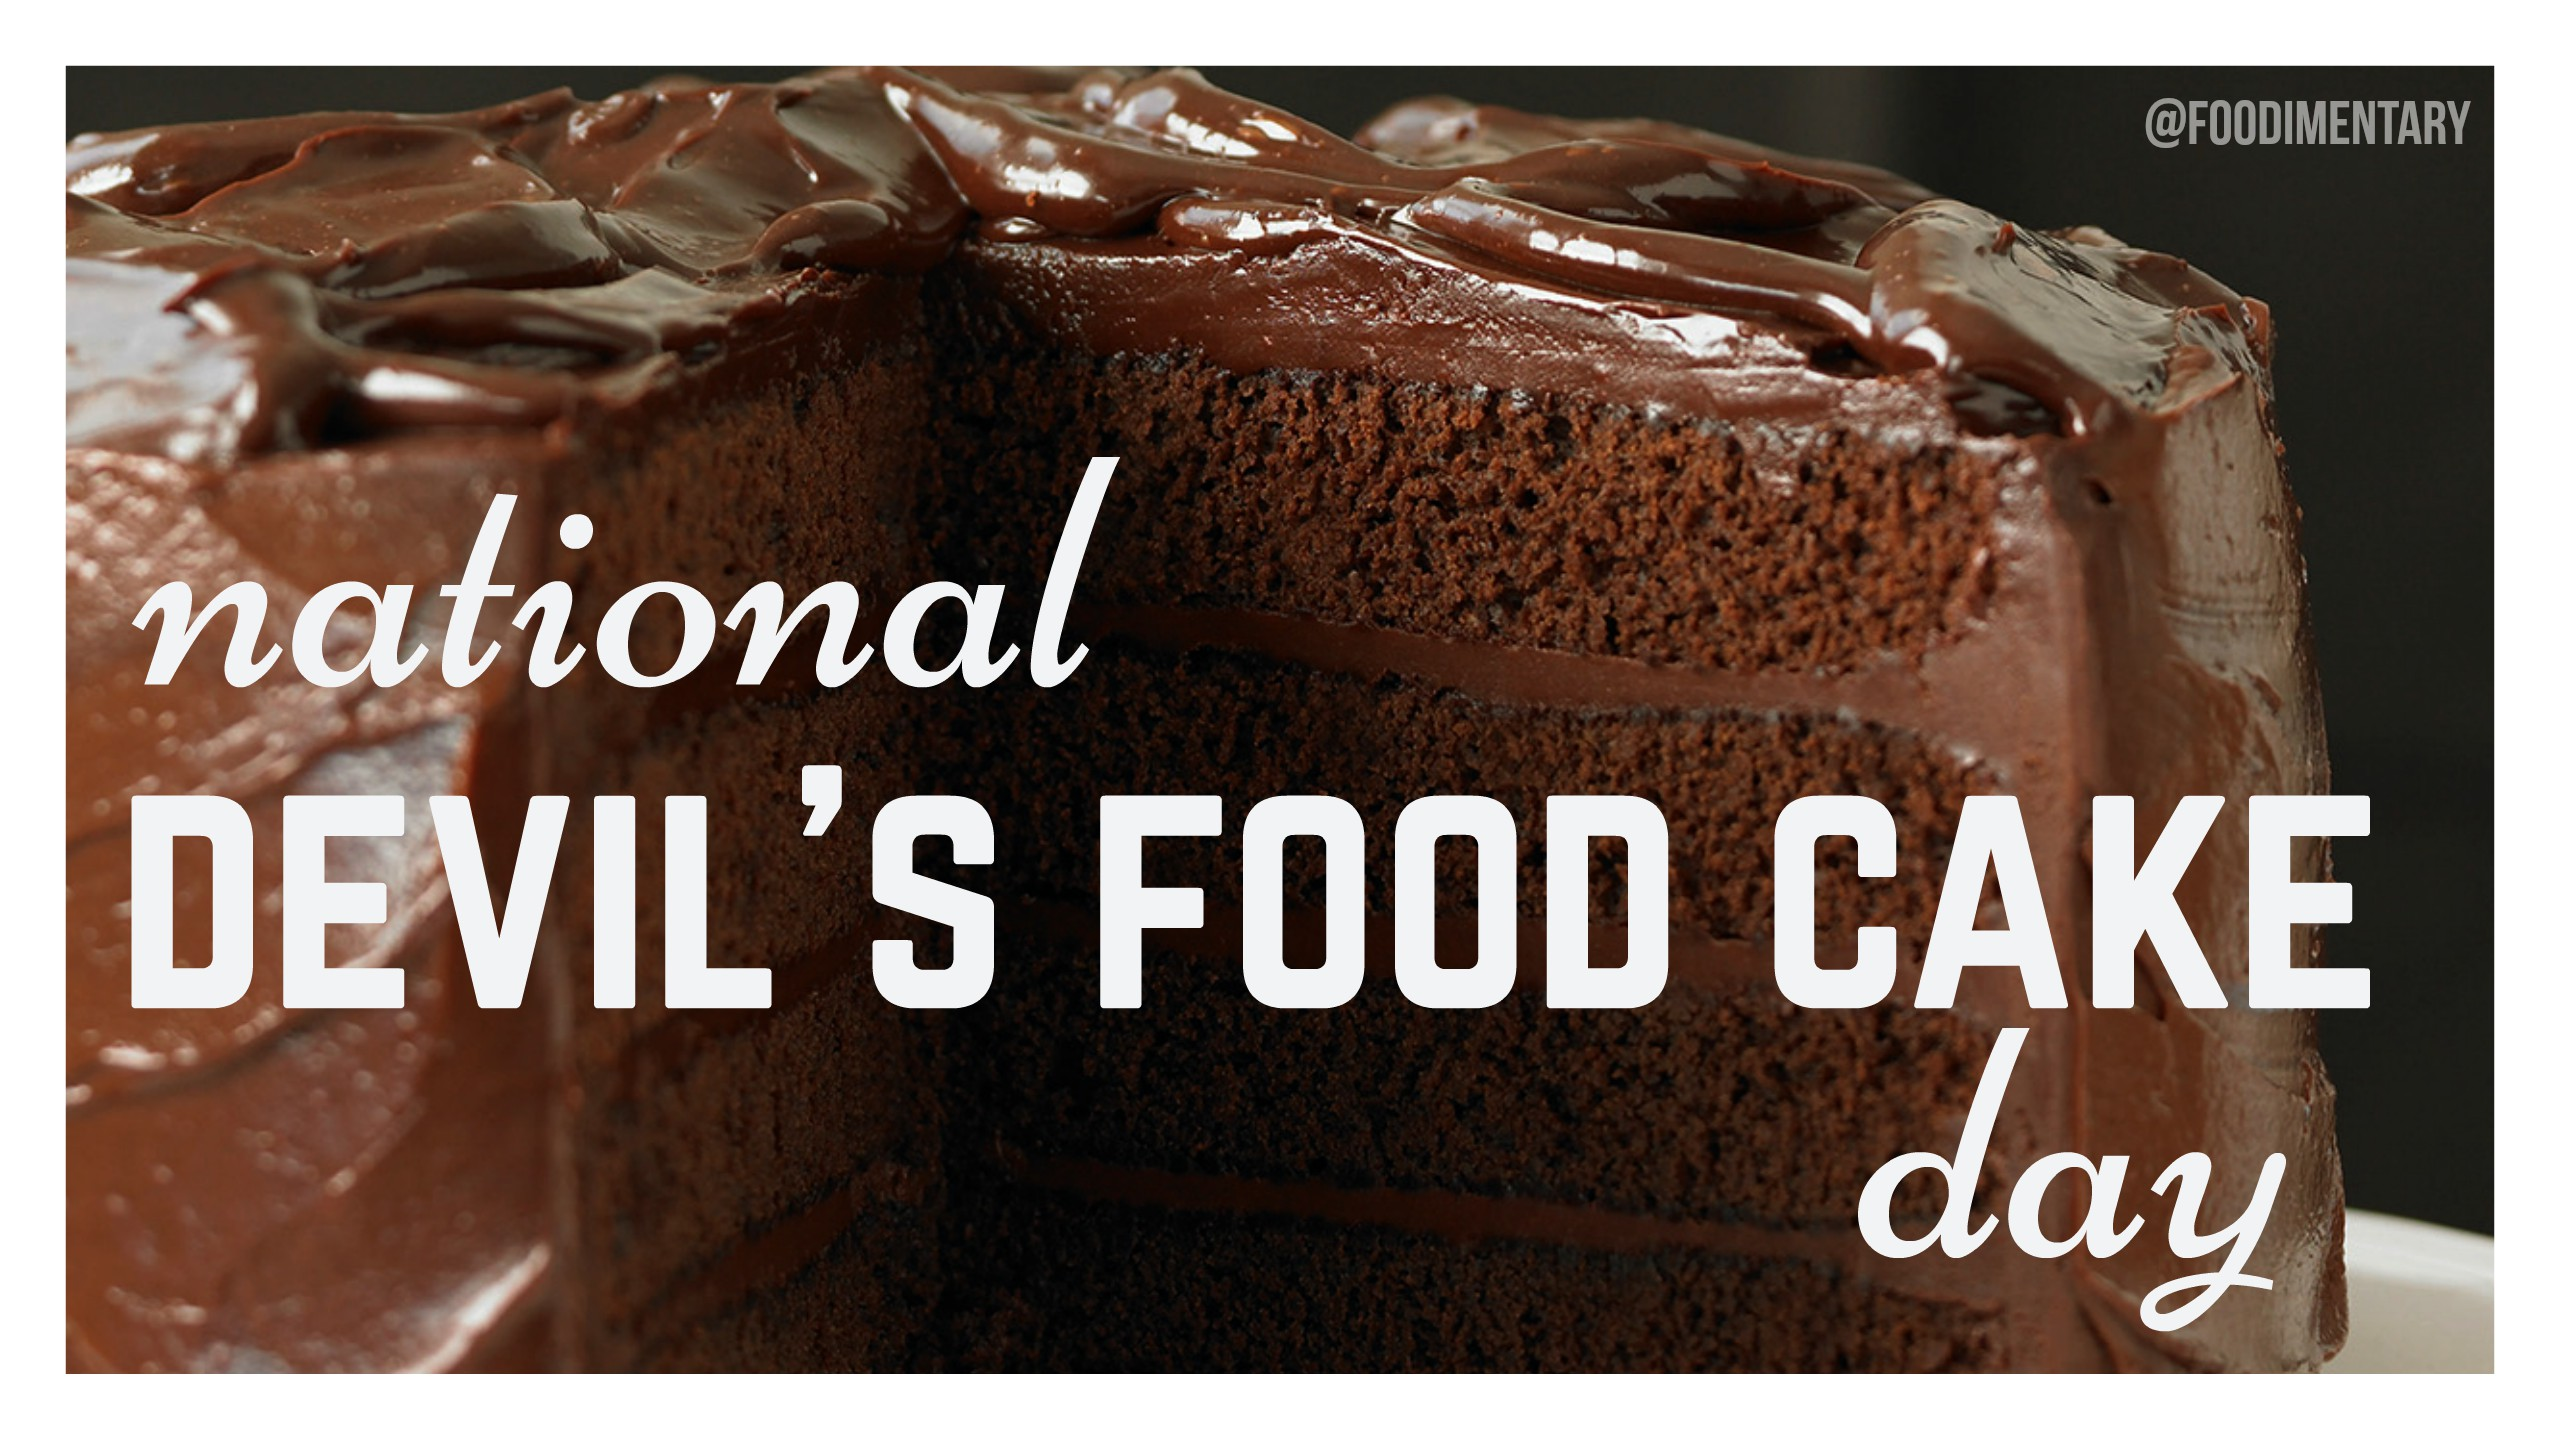 national devil's food cake day | Foodimentary - National Food Holidays